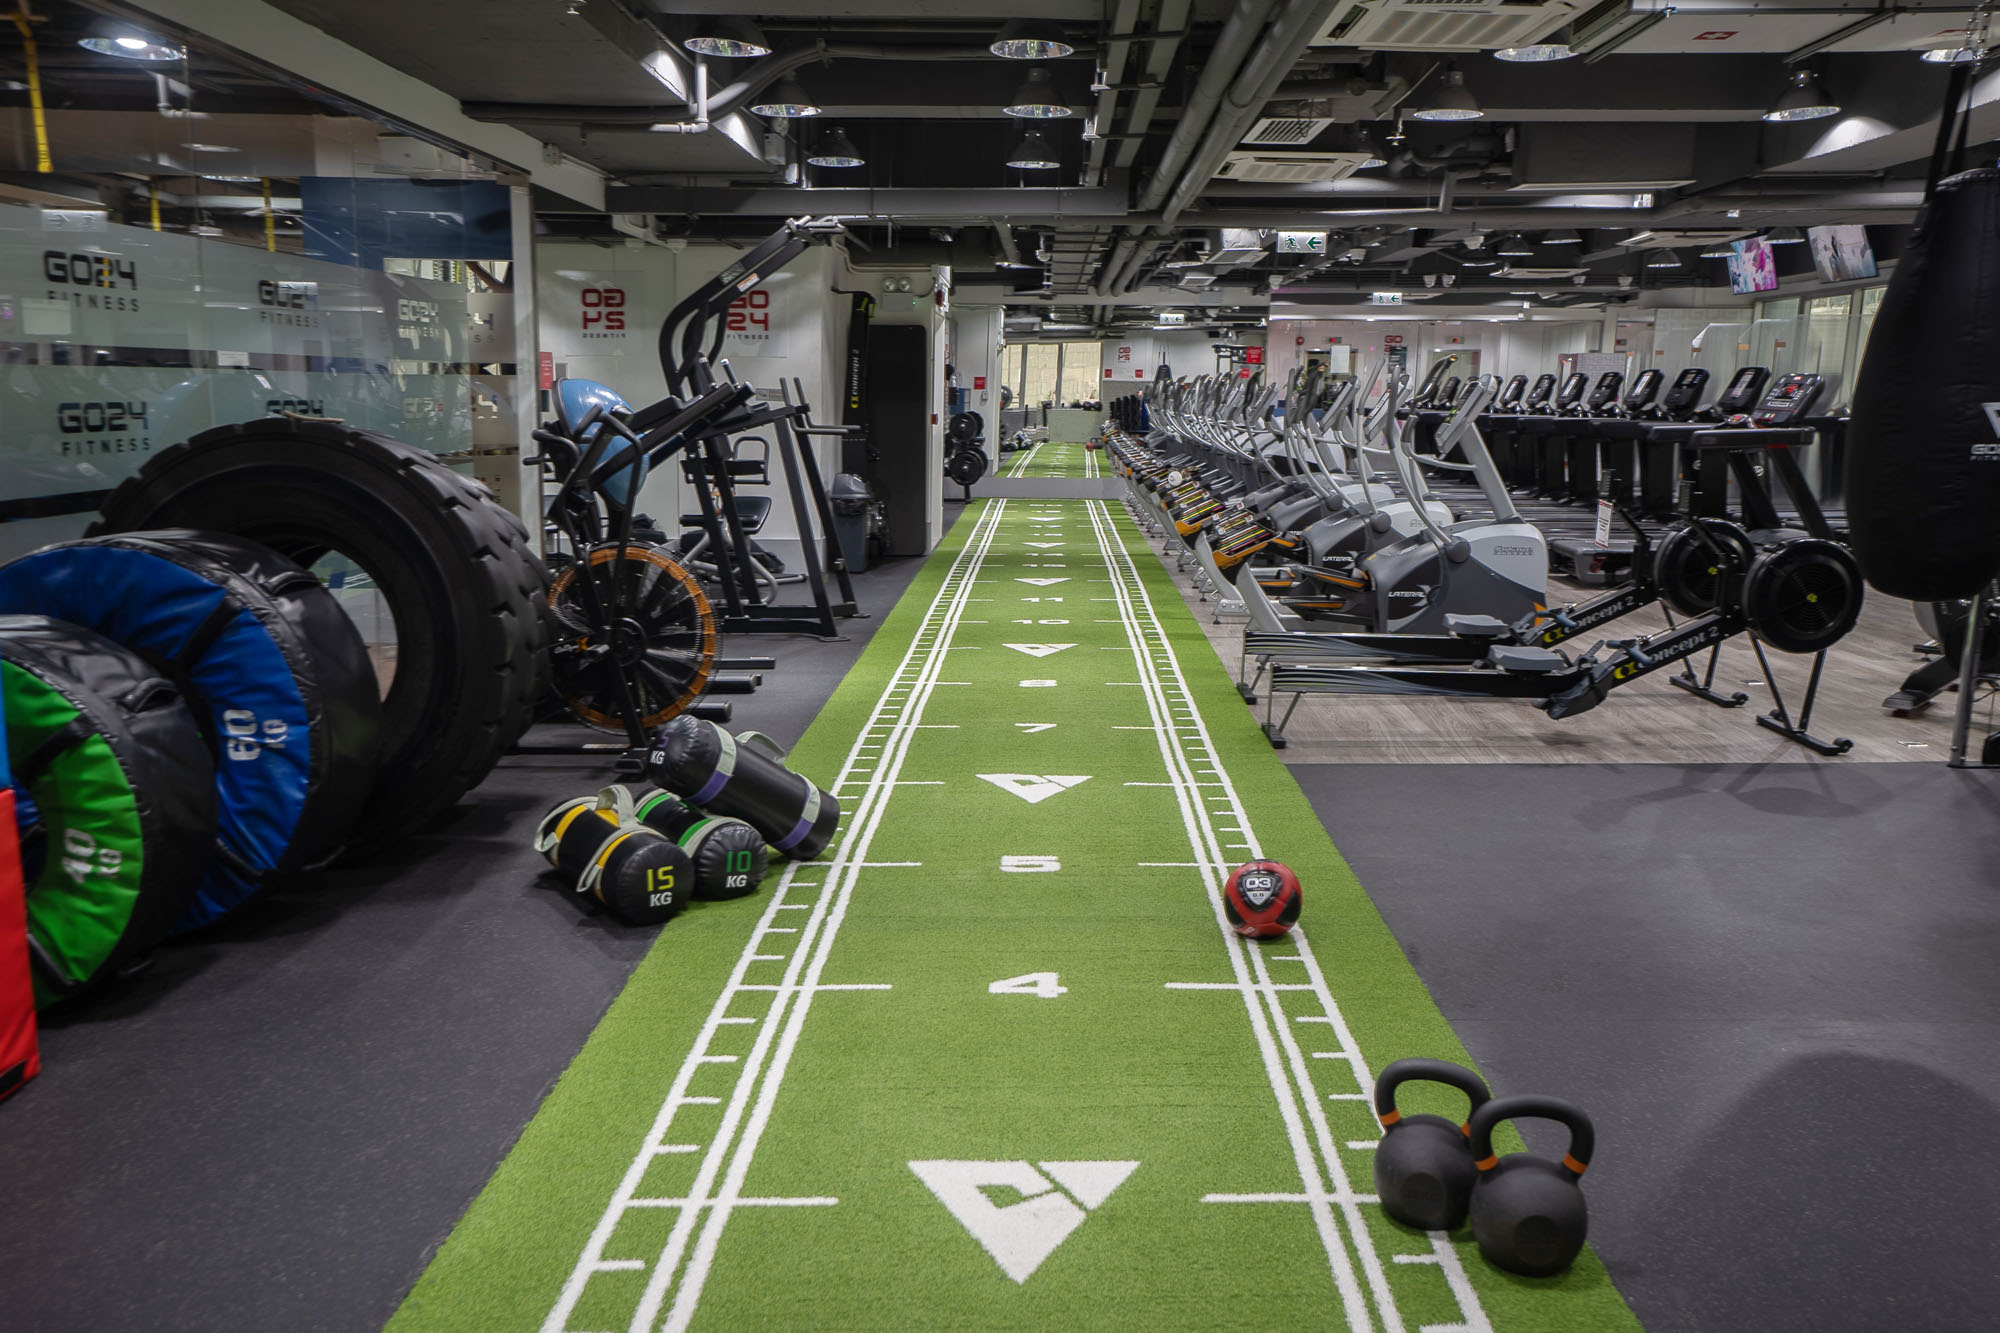 Great free weights area